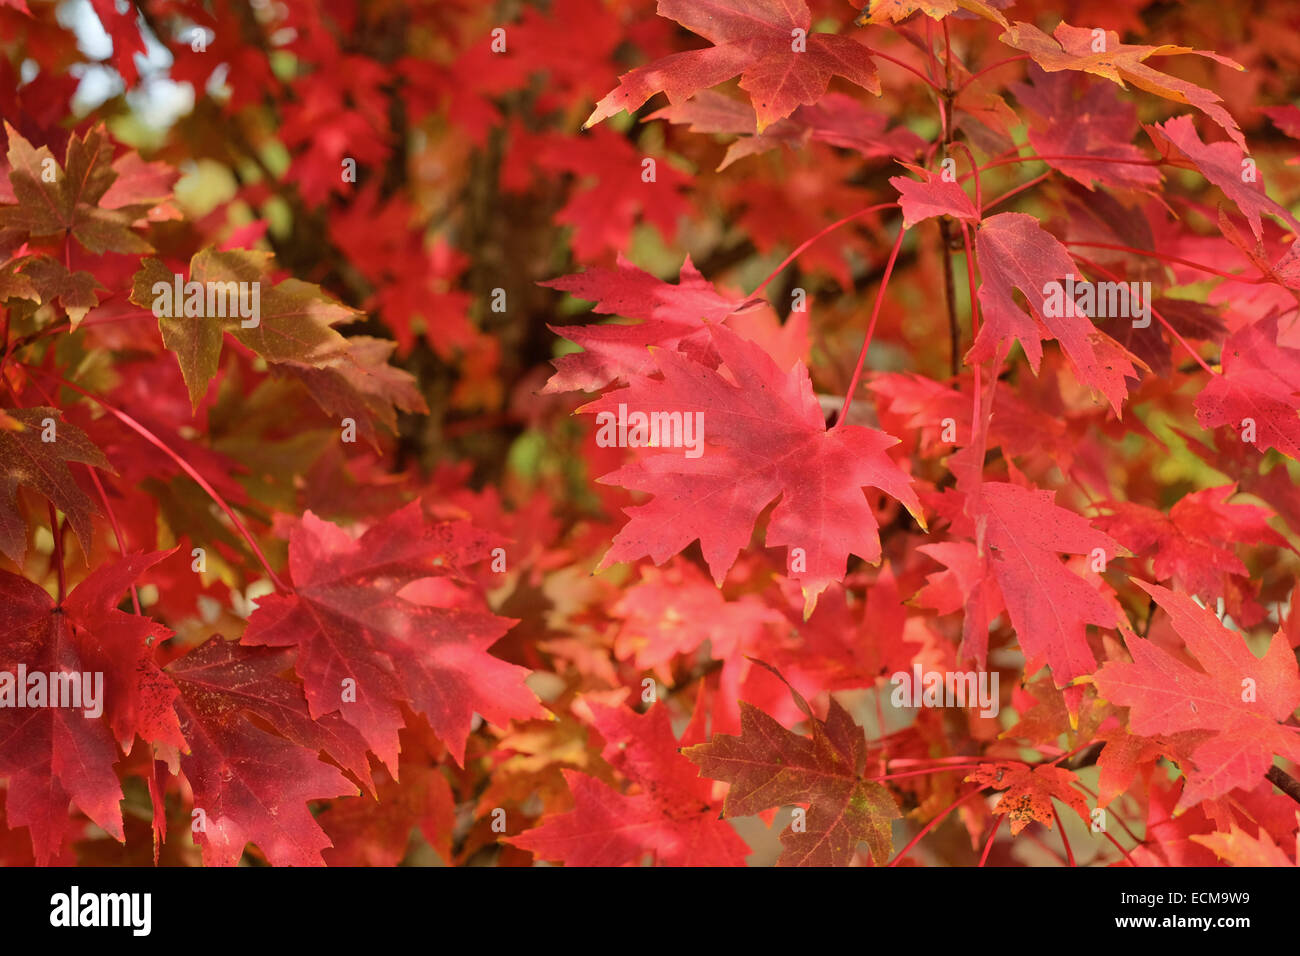 close-up-view-of-red-october-glory-acer-